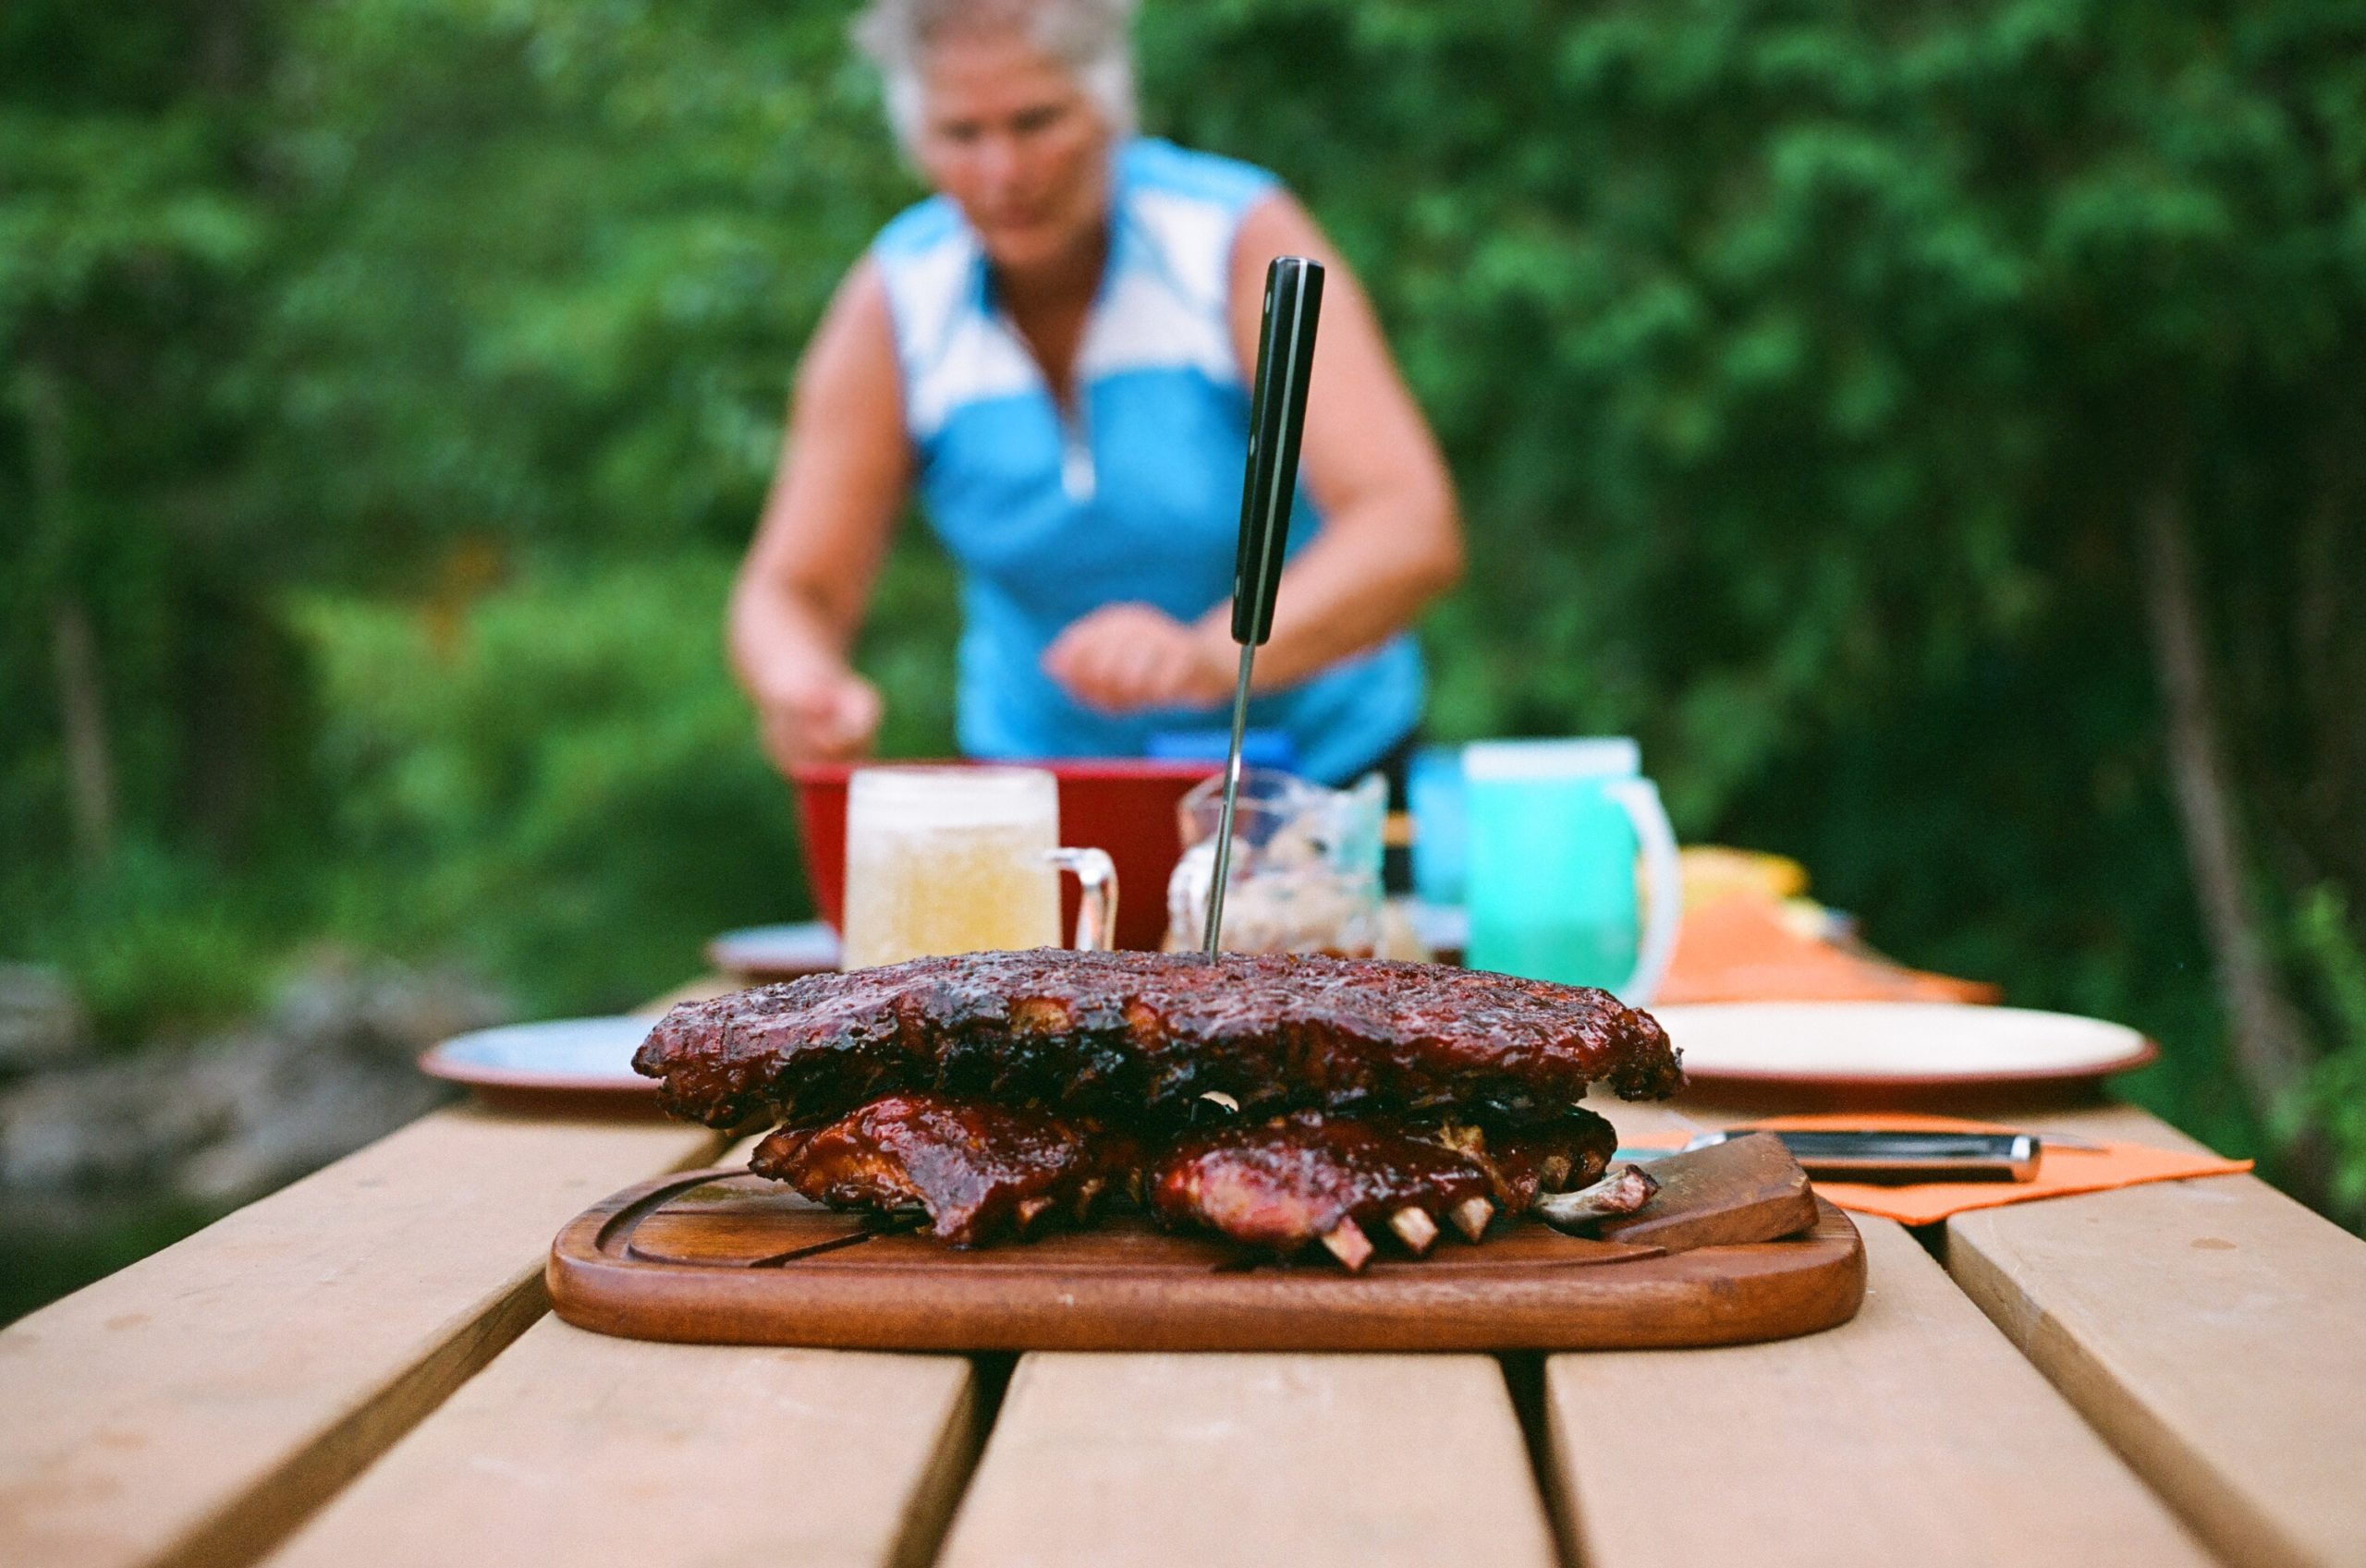 Ribs on the picnic table